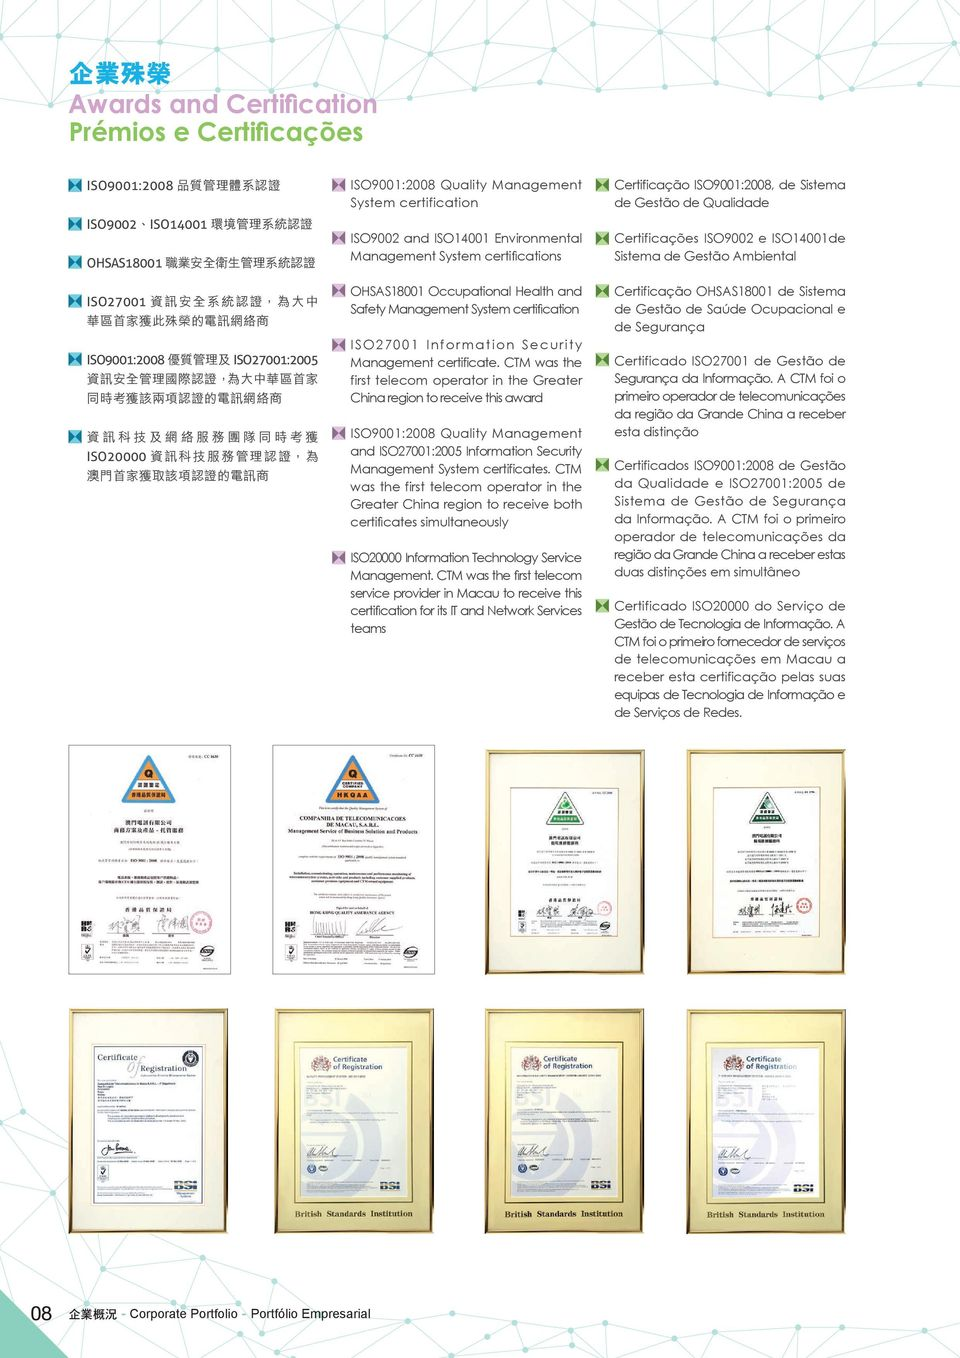 CTM was the first telecom operator in the Greater China region to receive this award ISO9001:2008 Quality Management and ISO27001:2005 Information Security Management System certificates.